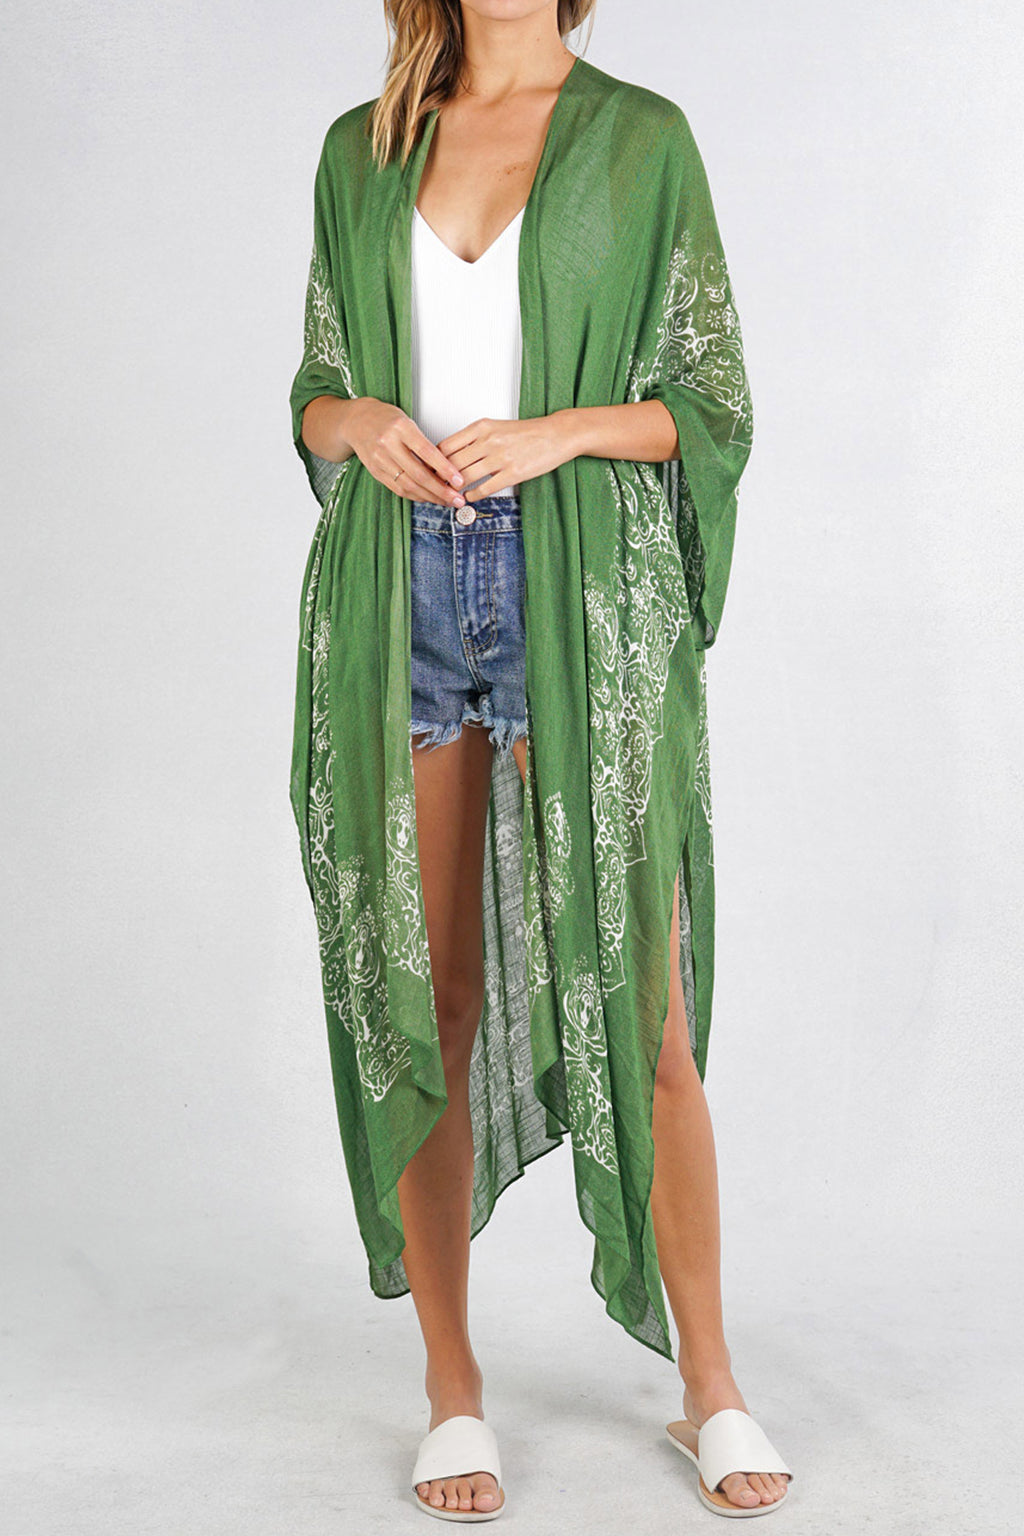 Aria Scarf Kimono in Leaf - Boho Bum Island Clothing Swimwear Bohemian Boho west palm beach  Miami florida  fall fashion spring fashion online shopping ootd blogger style swim boutique